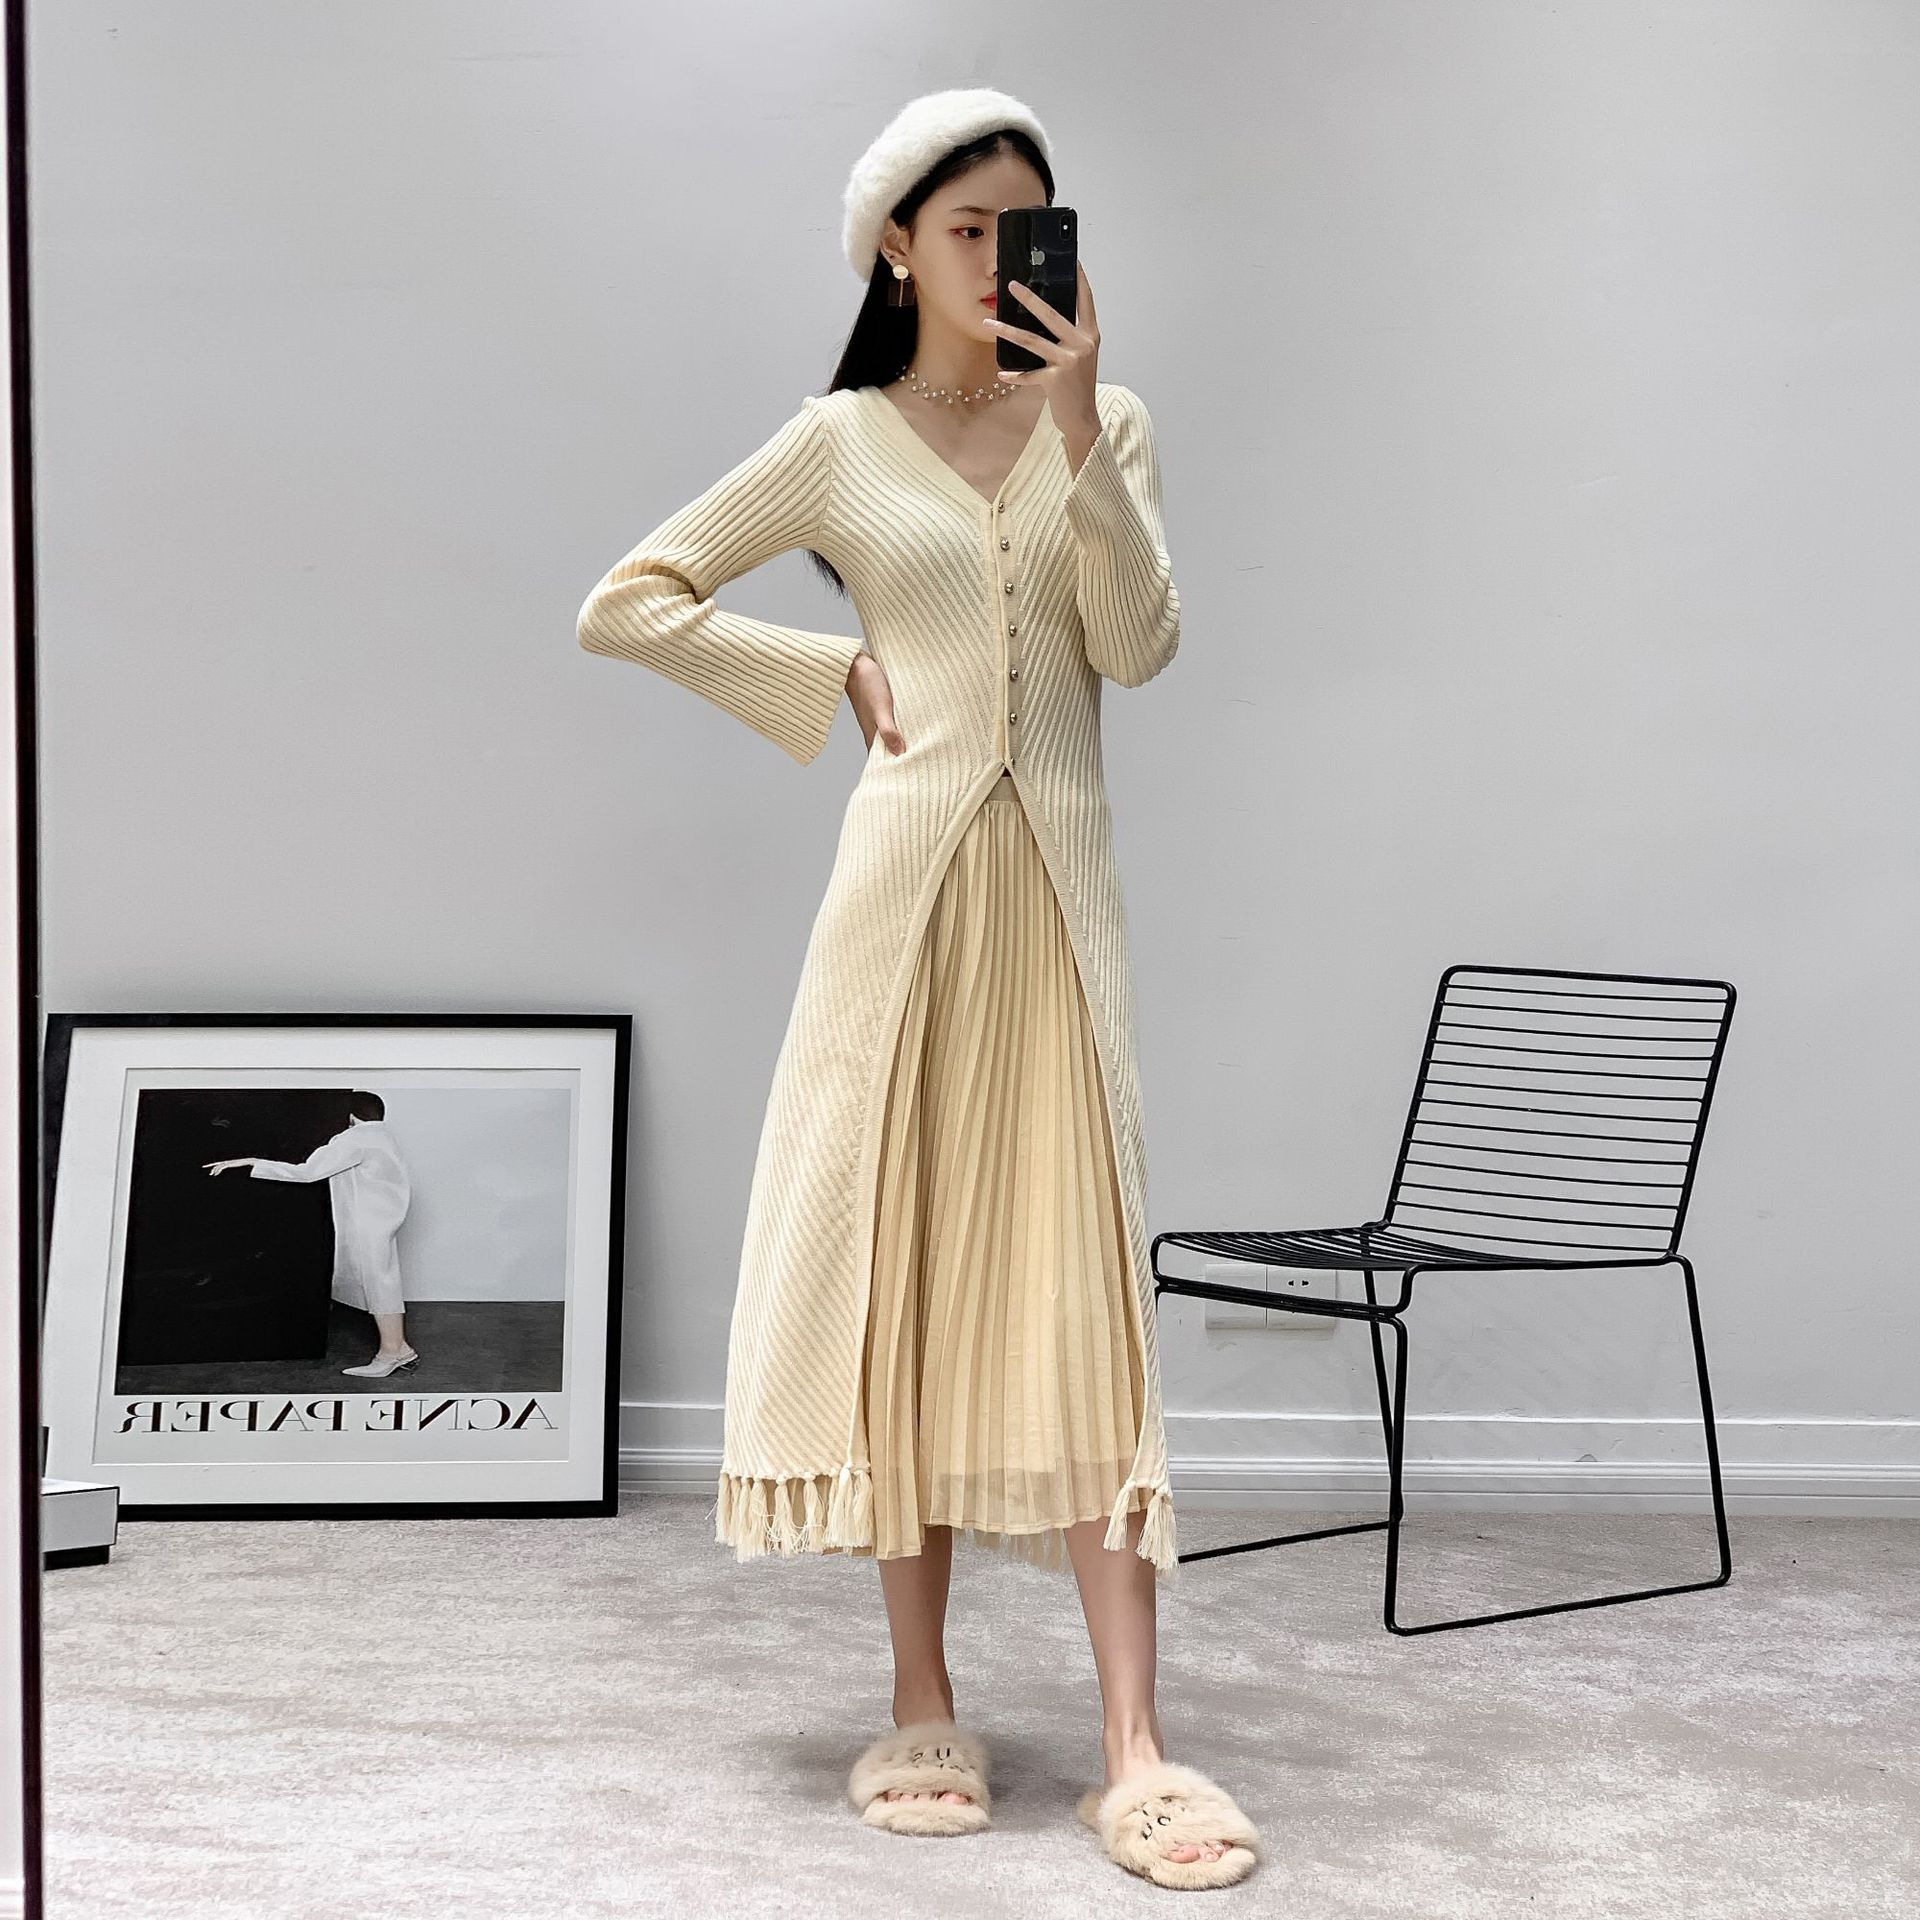 2019 Spring Winter 2 Pieces Set Dress Beige Sweater Japan Style Fit and Flare Sleeve Tassel Sexy Dress Hem Split